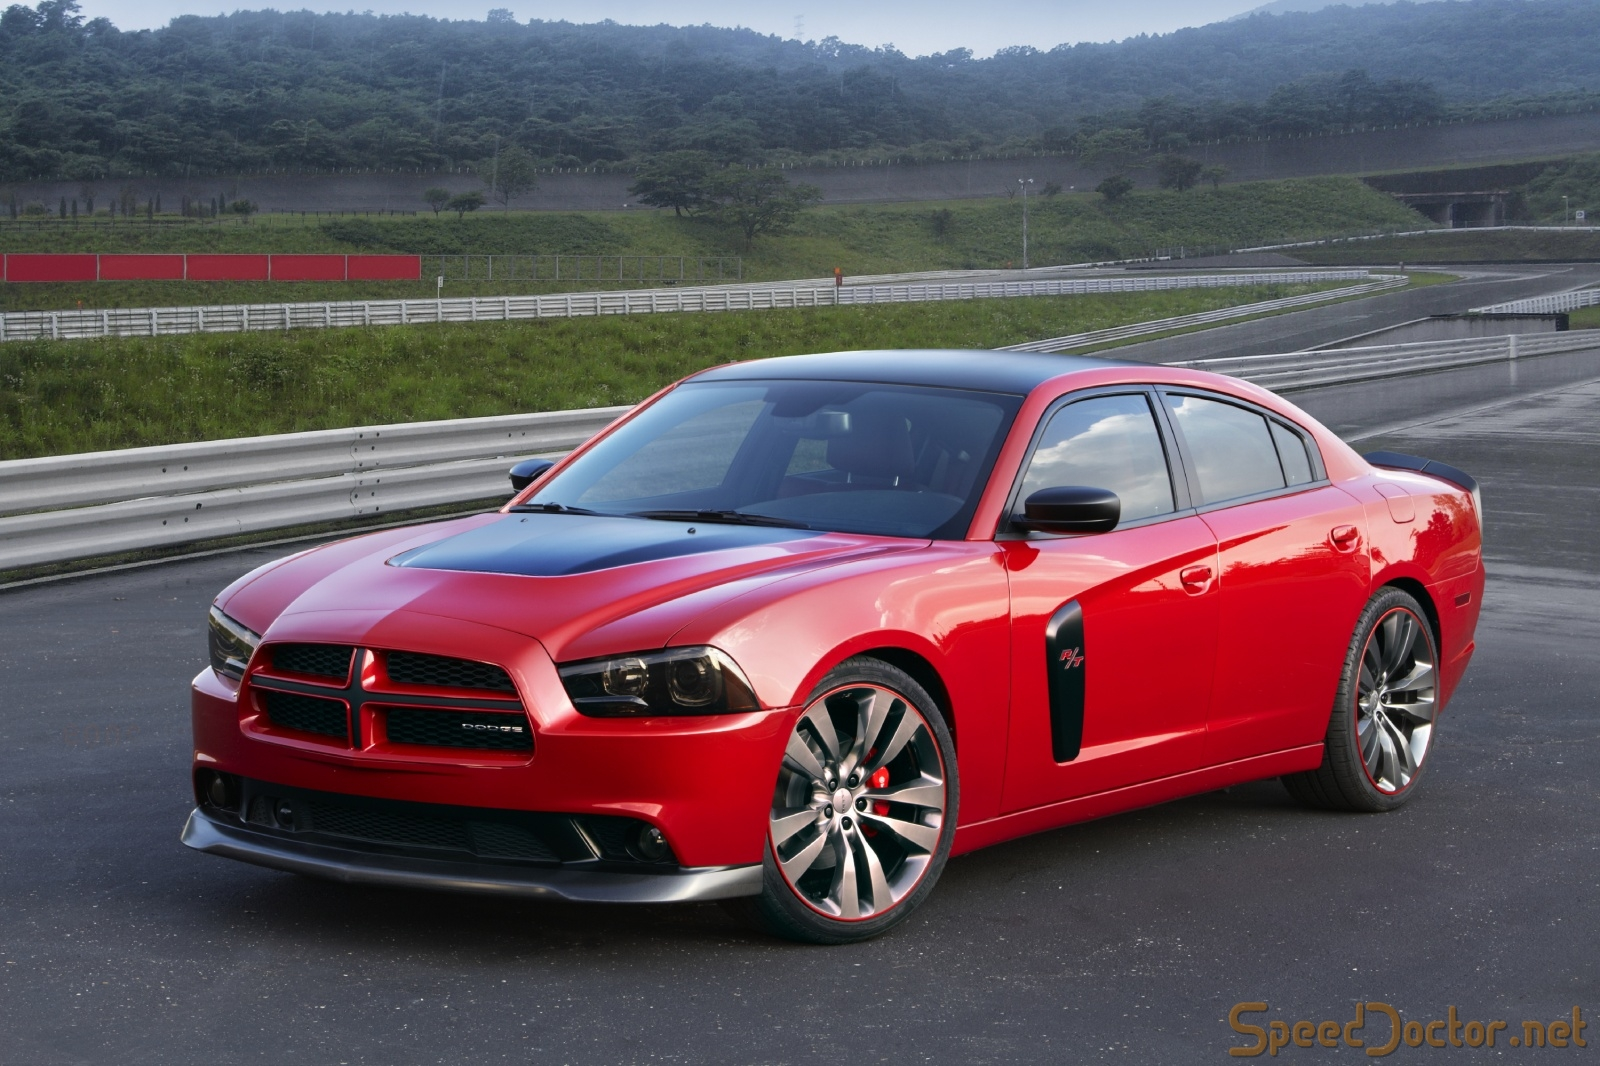 2011 Dodge Charger #13